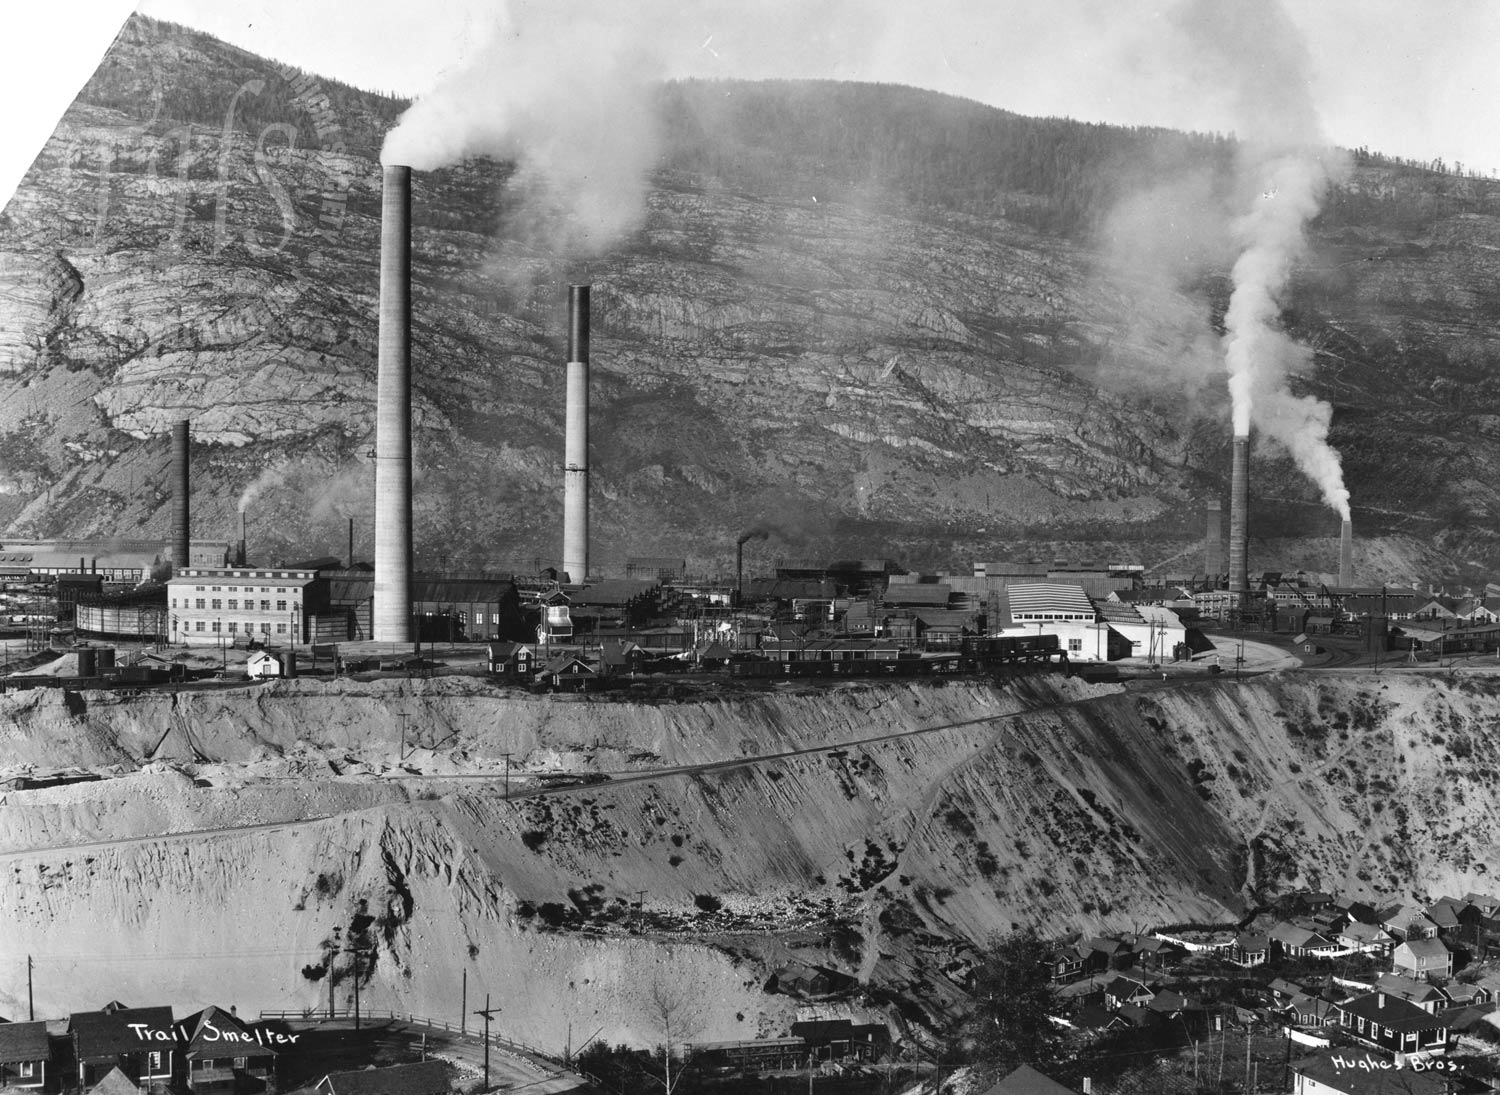 Smelter from West Trail (Hughes) - 1928